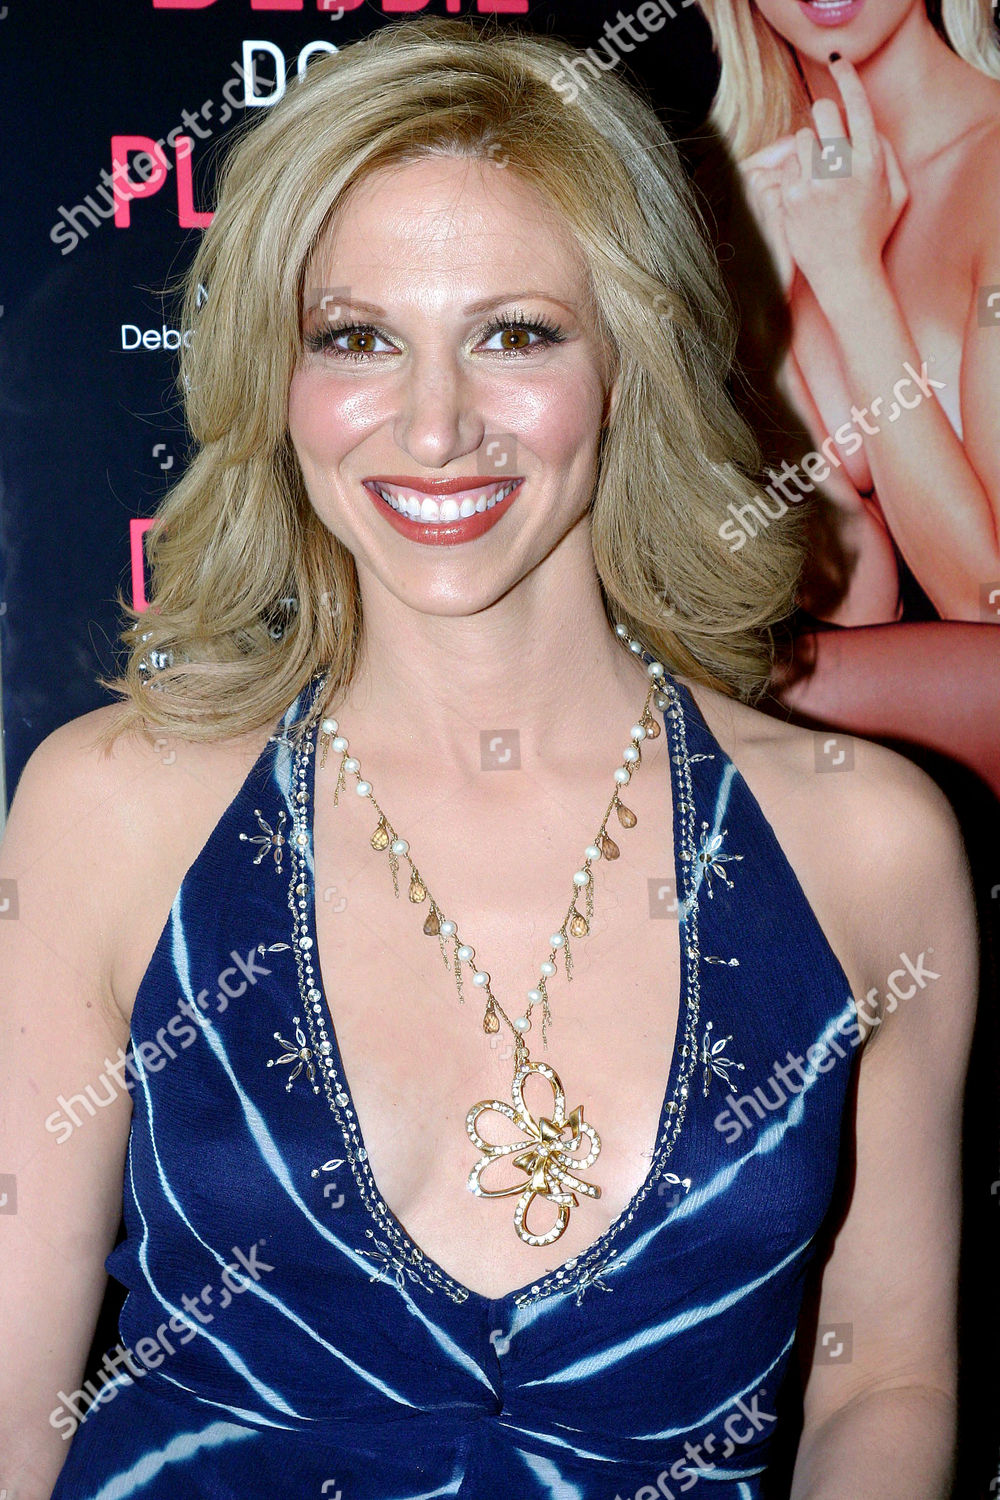 Debbie Gibson Playboy Pictures photo 26